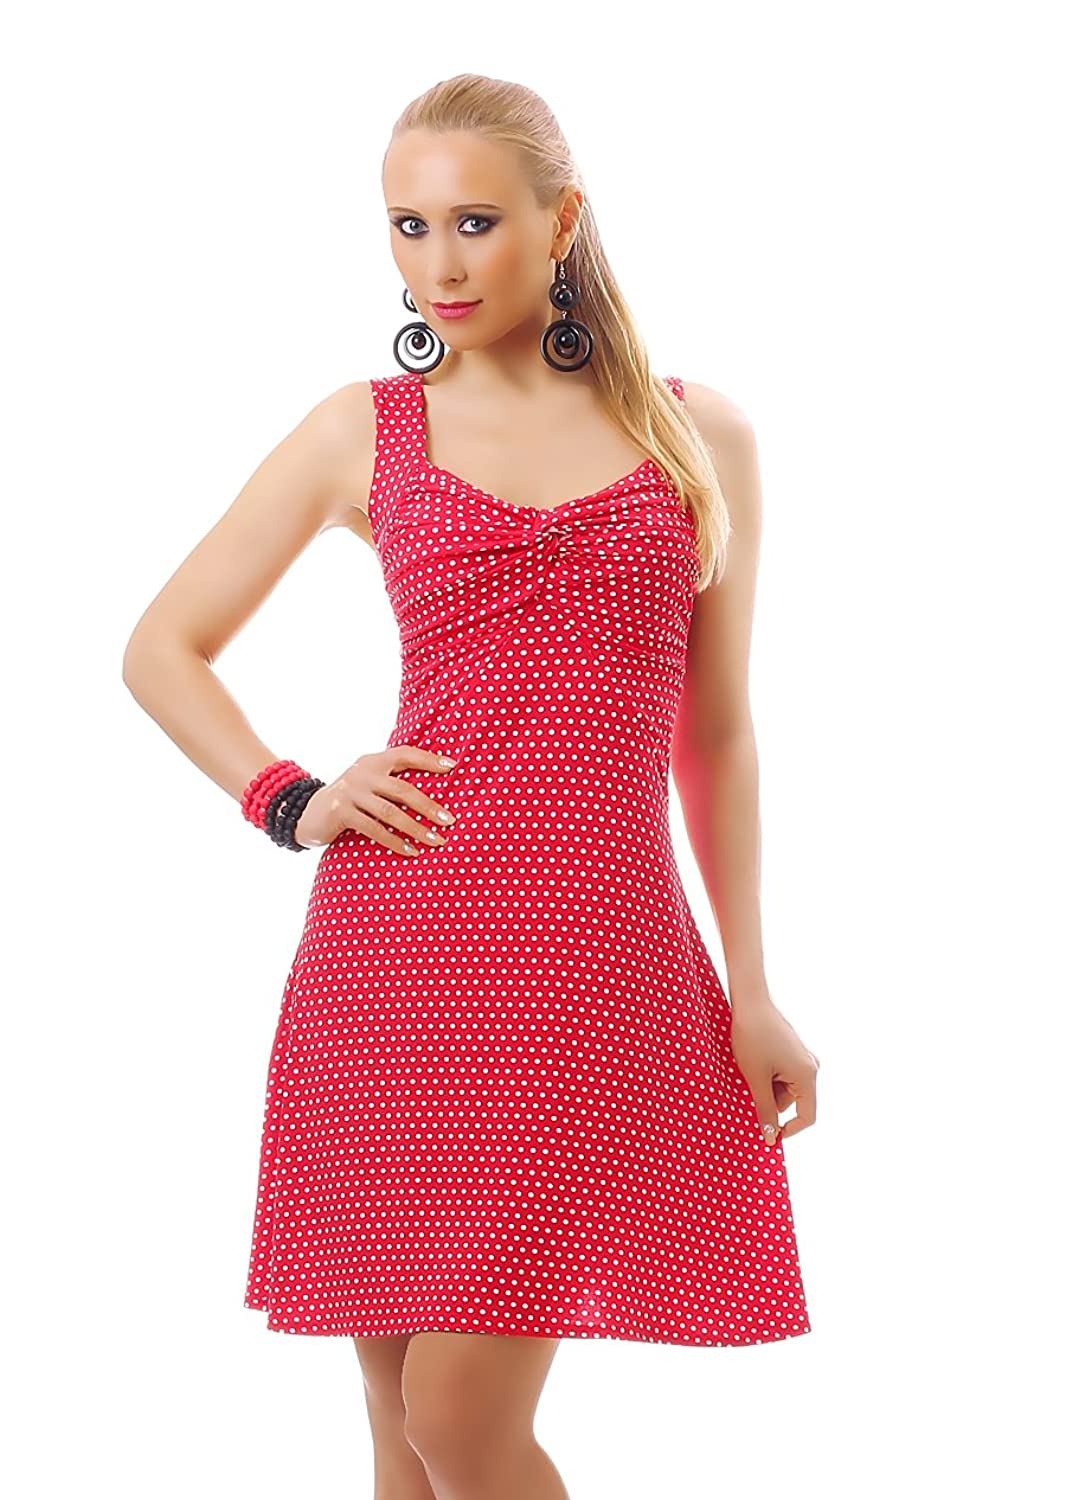 Damen Rockabilly 50er 60er 70er Retro Vintage Rockabilly Kleid ...